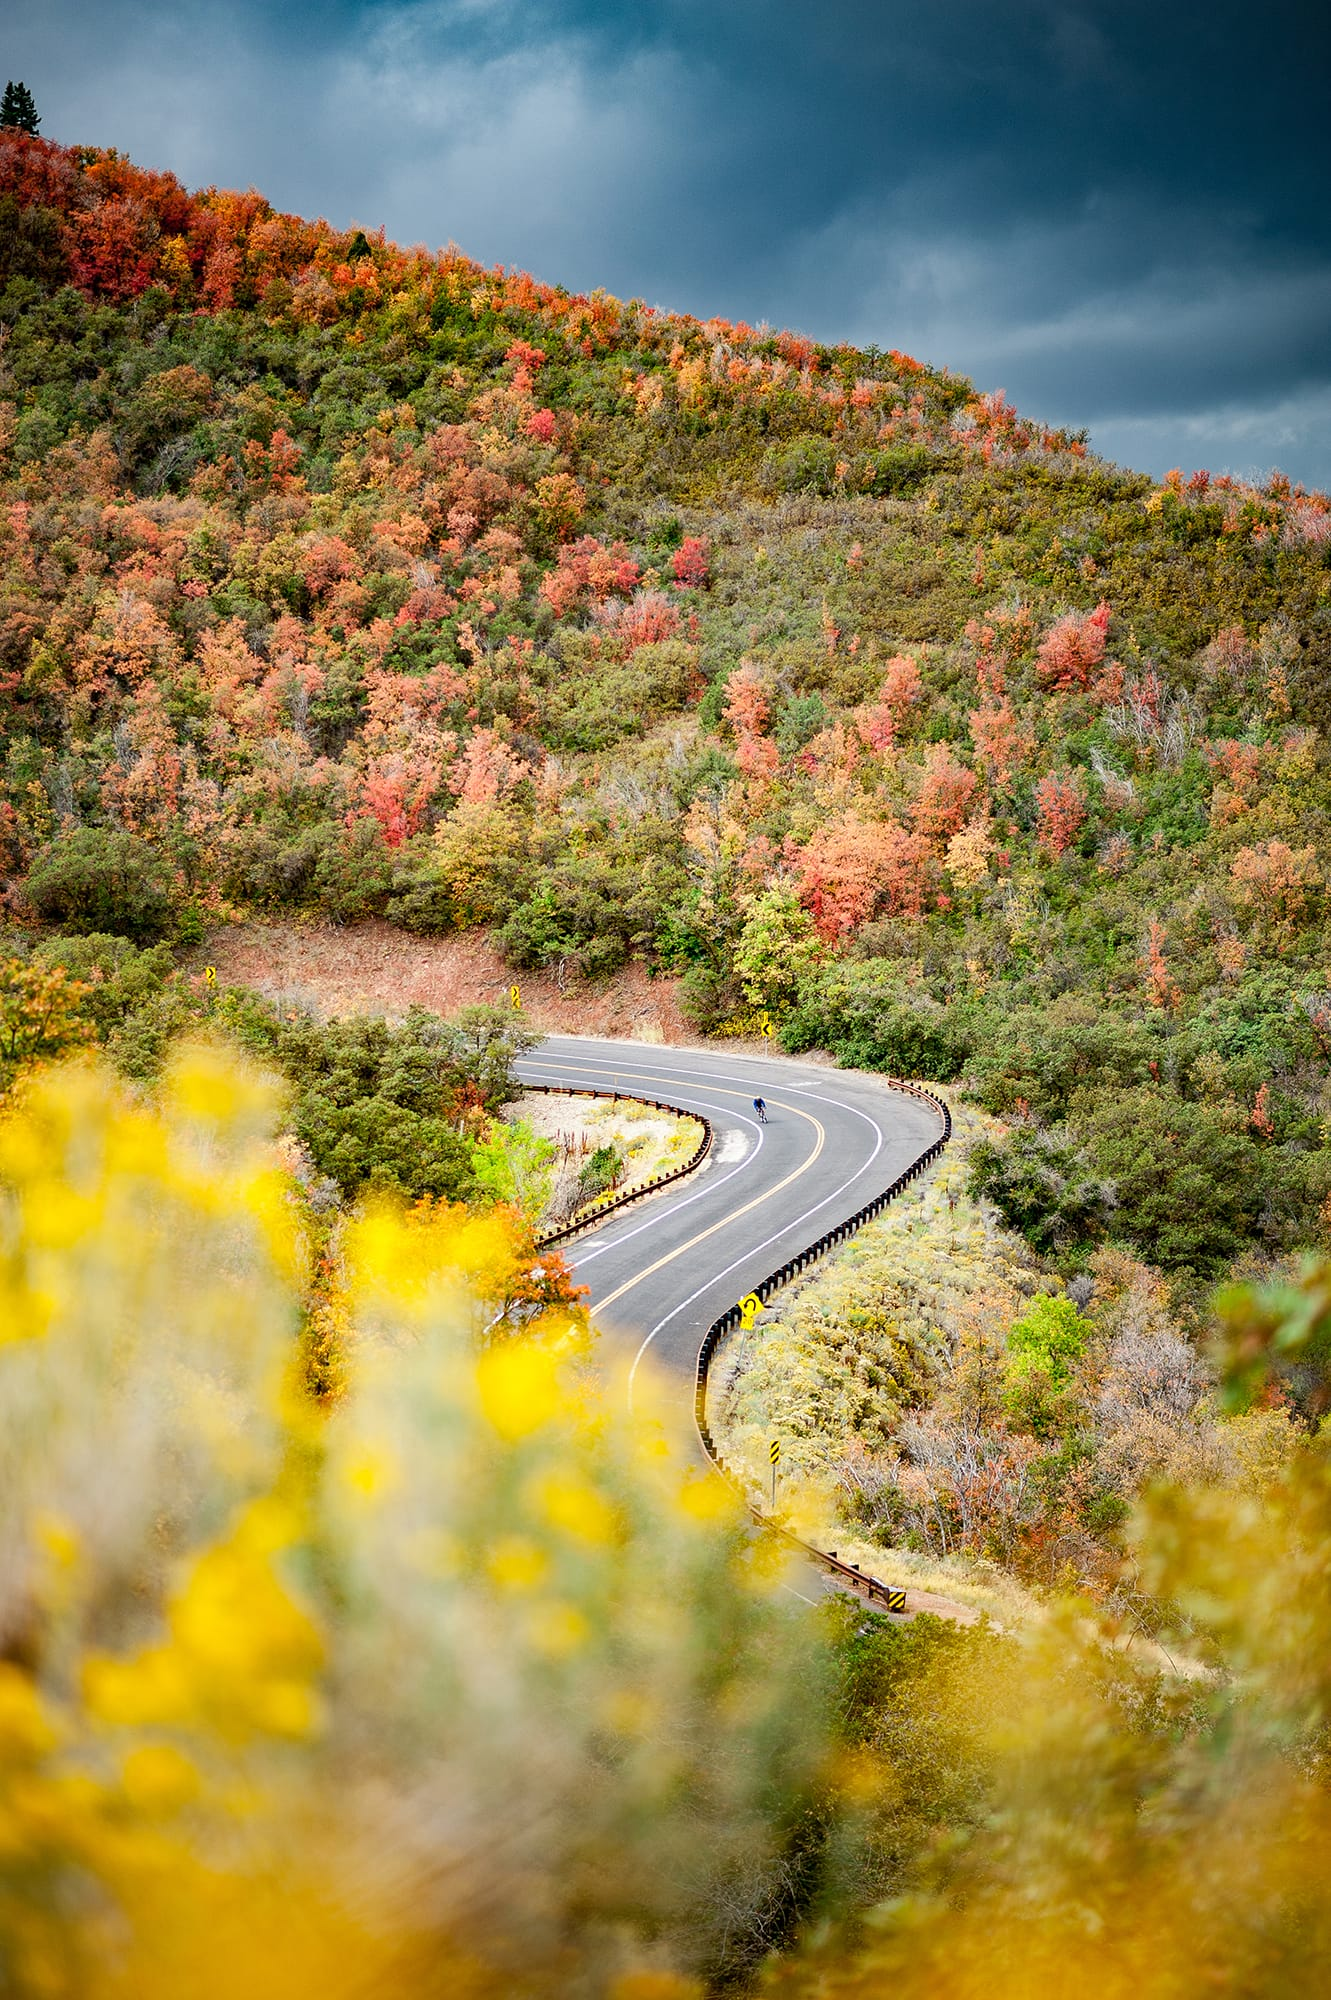 Cyclists coming down the Blue Ridge Parkway